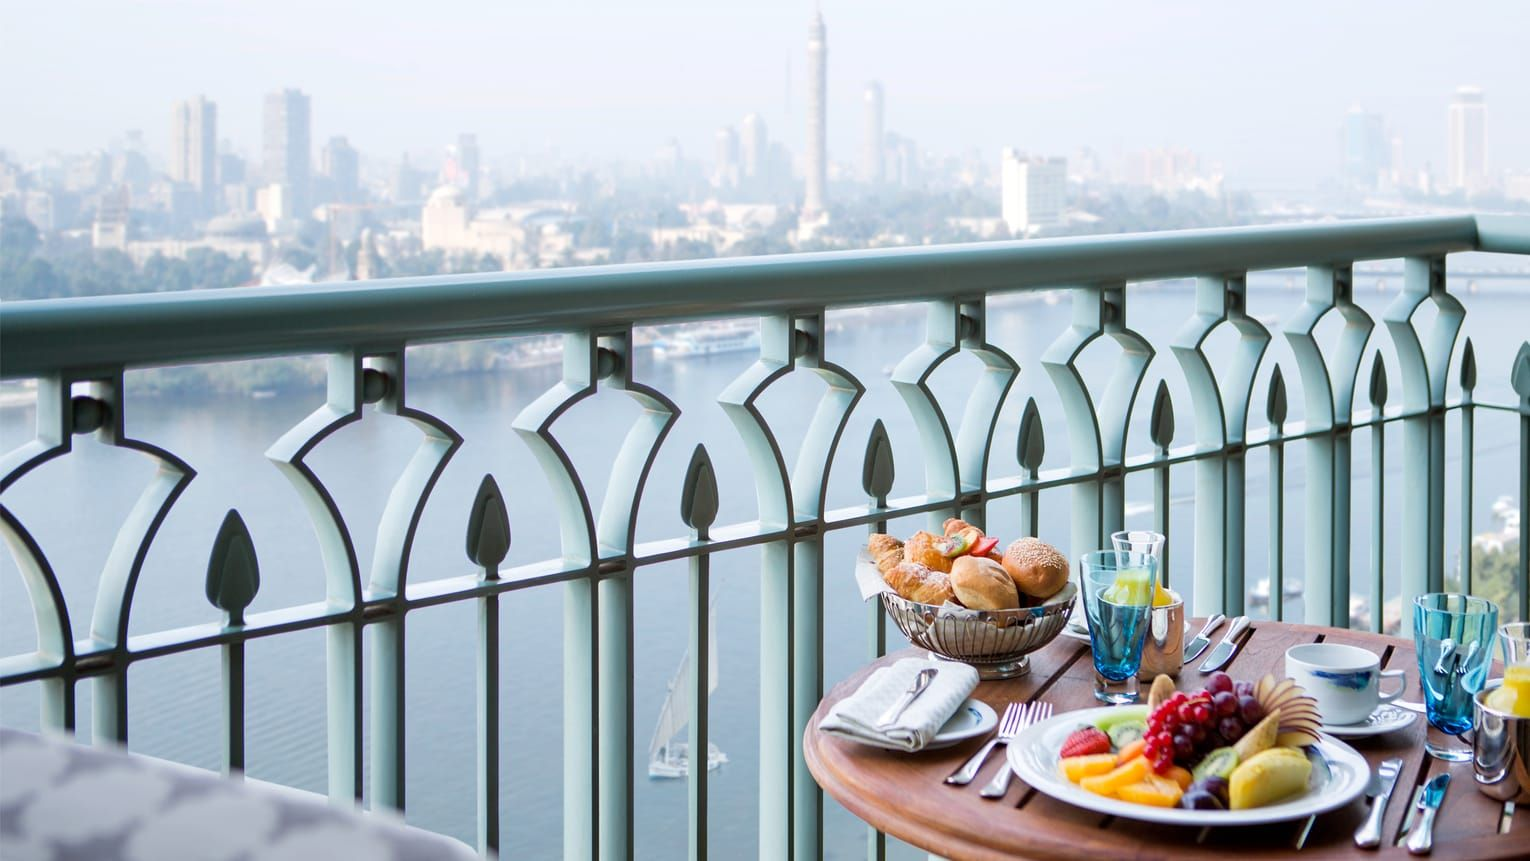 Home interior fruit plates closeup of balcony table with plate of fresh fruit bread and